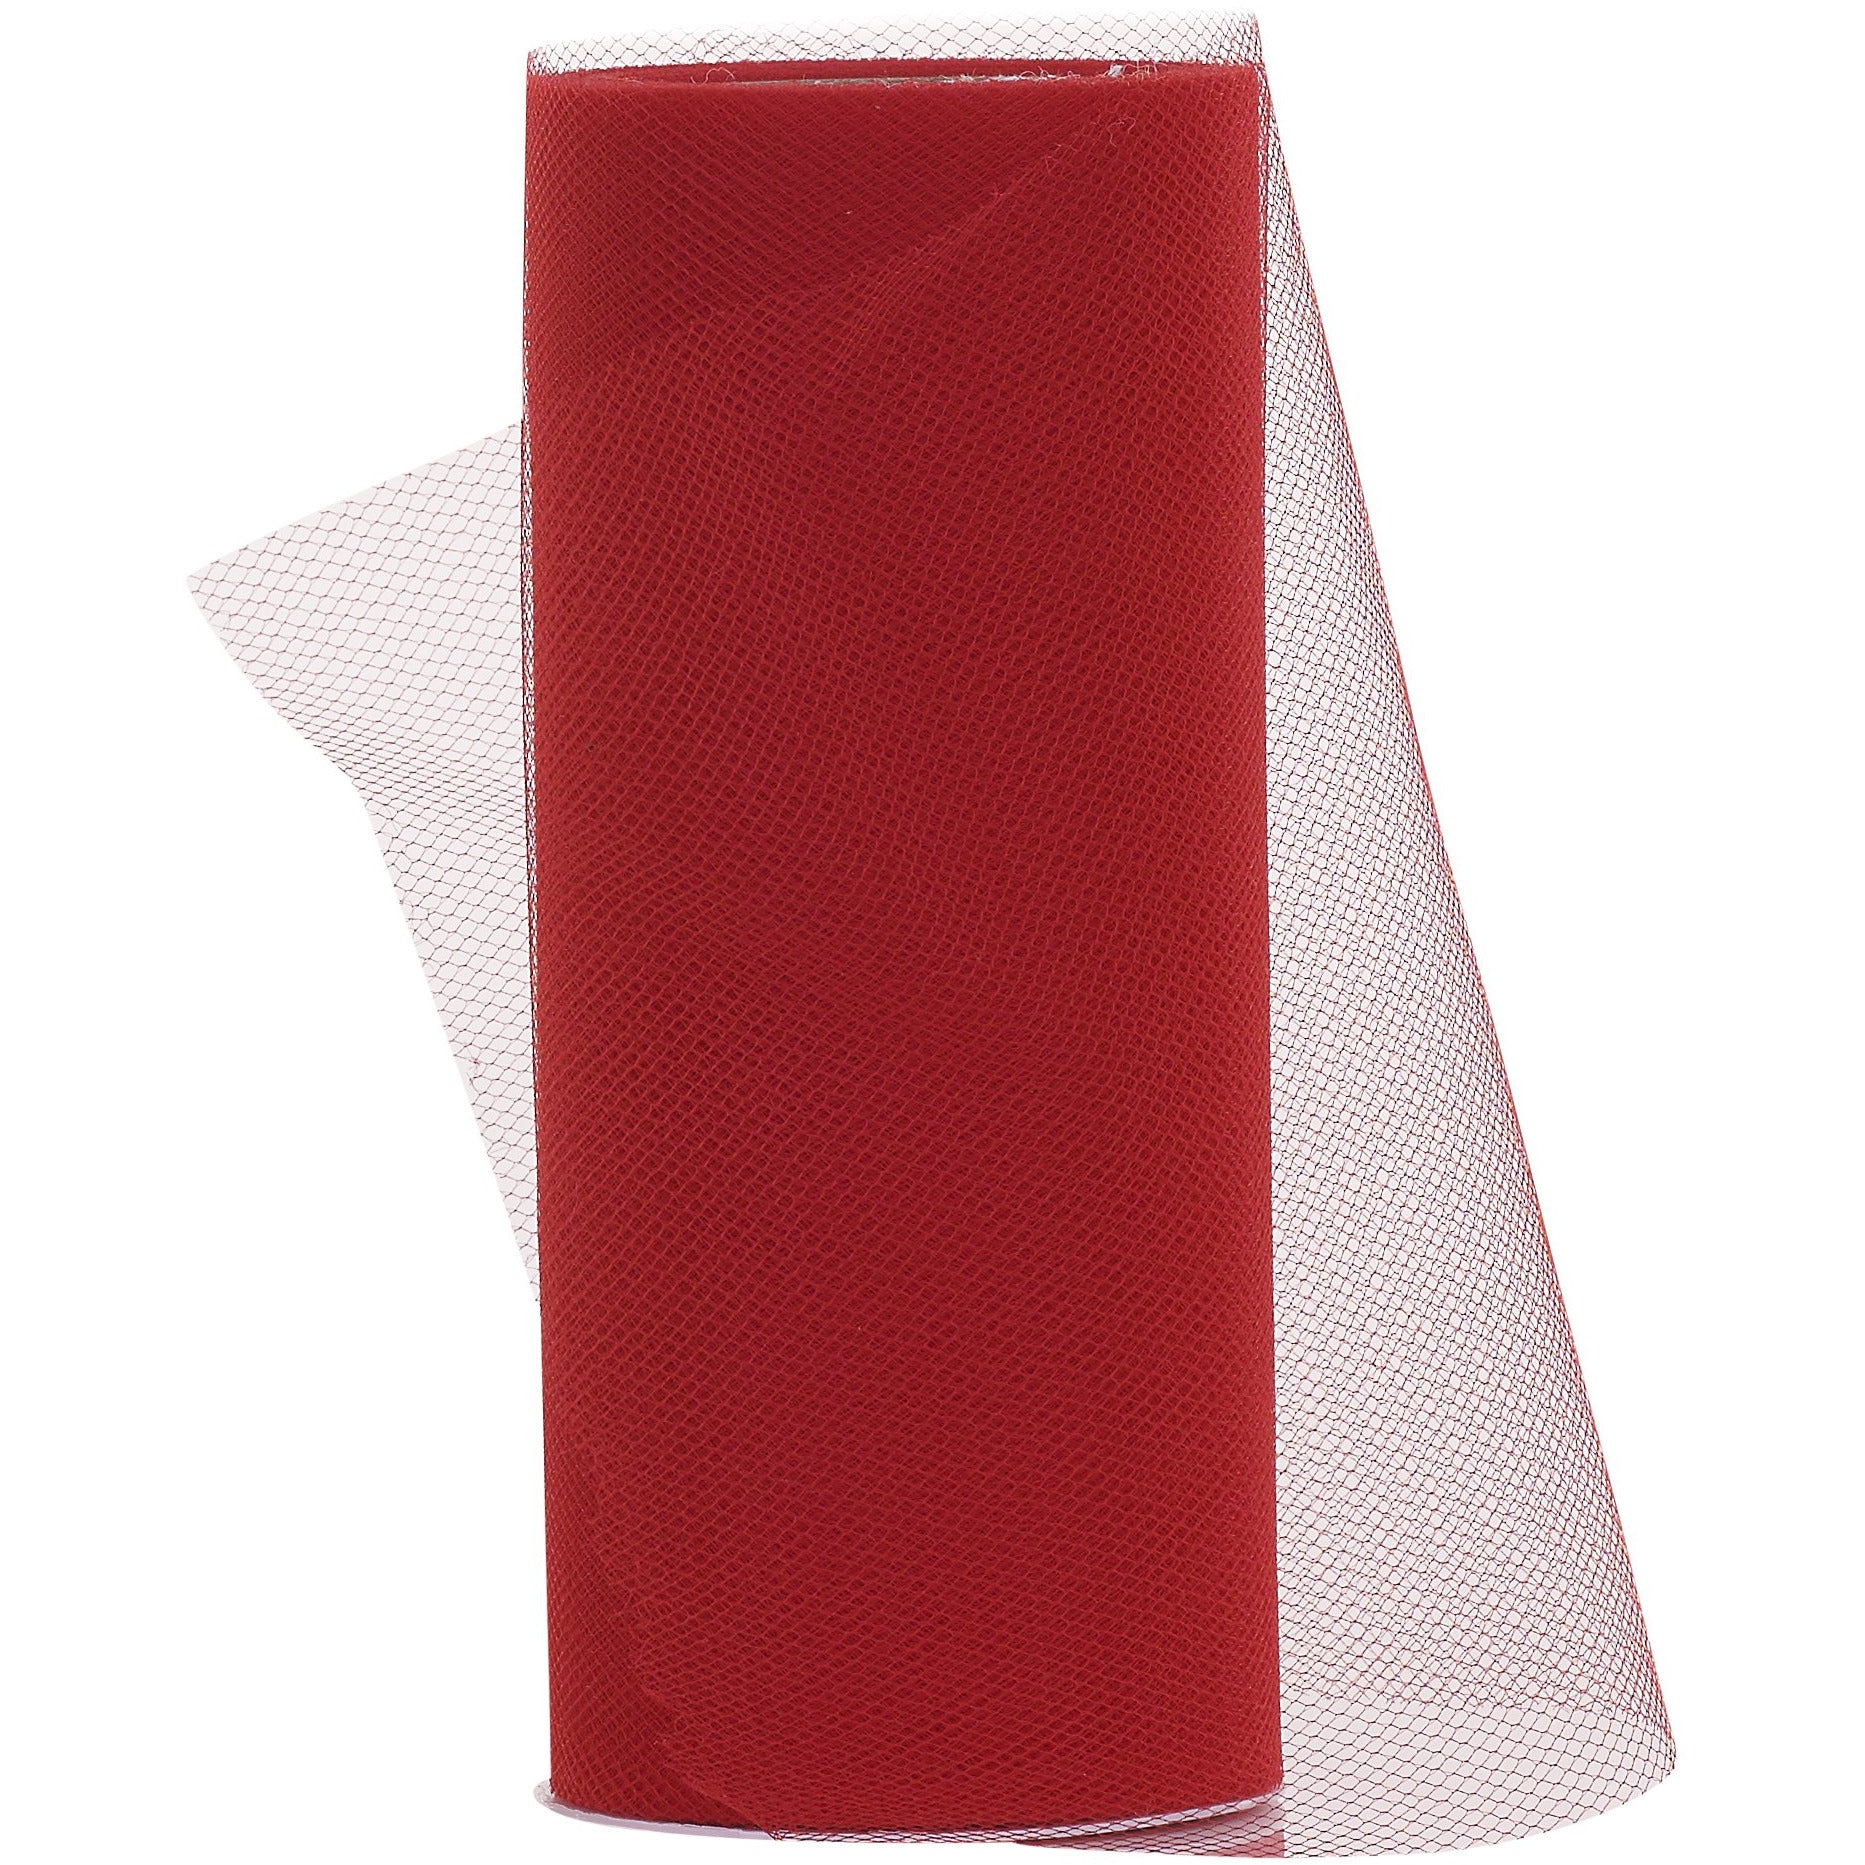 "Red - 6"" x 25 Yards - Tulle Fabric Roll"